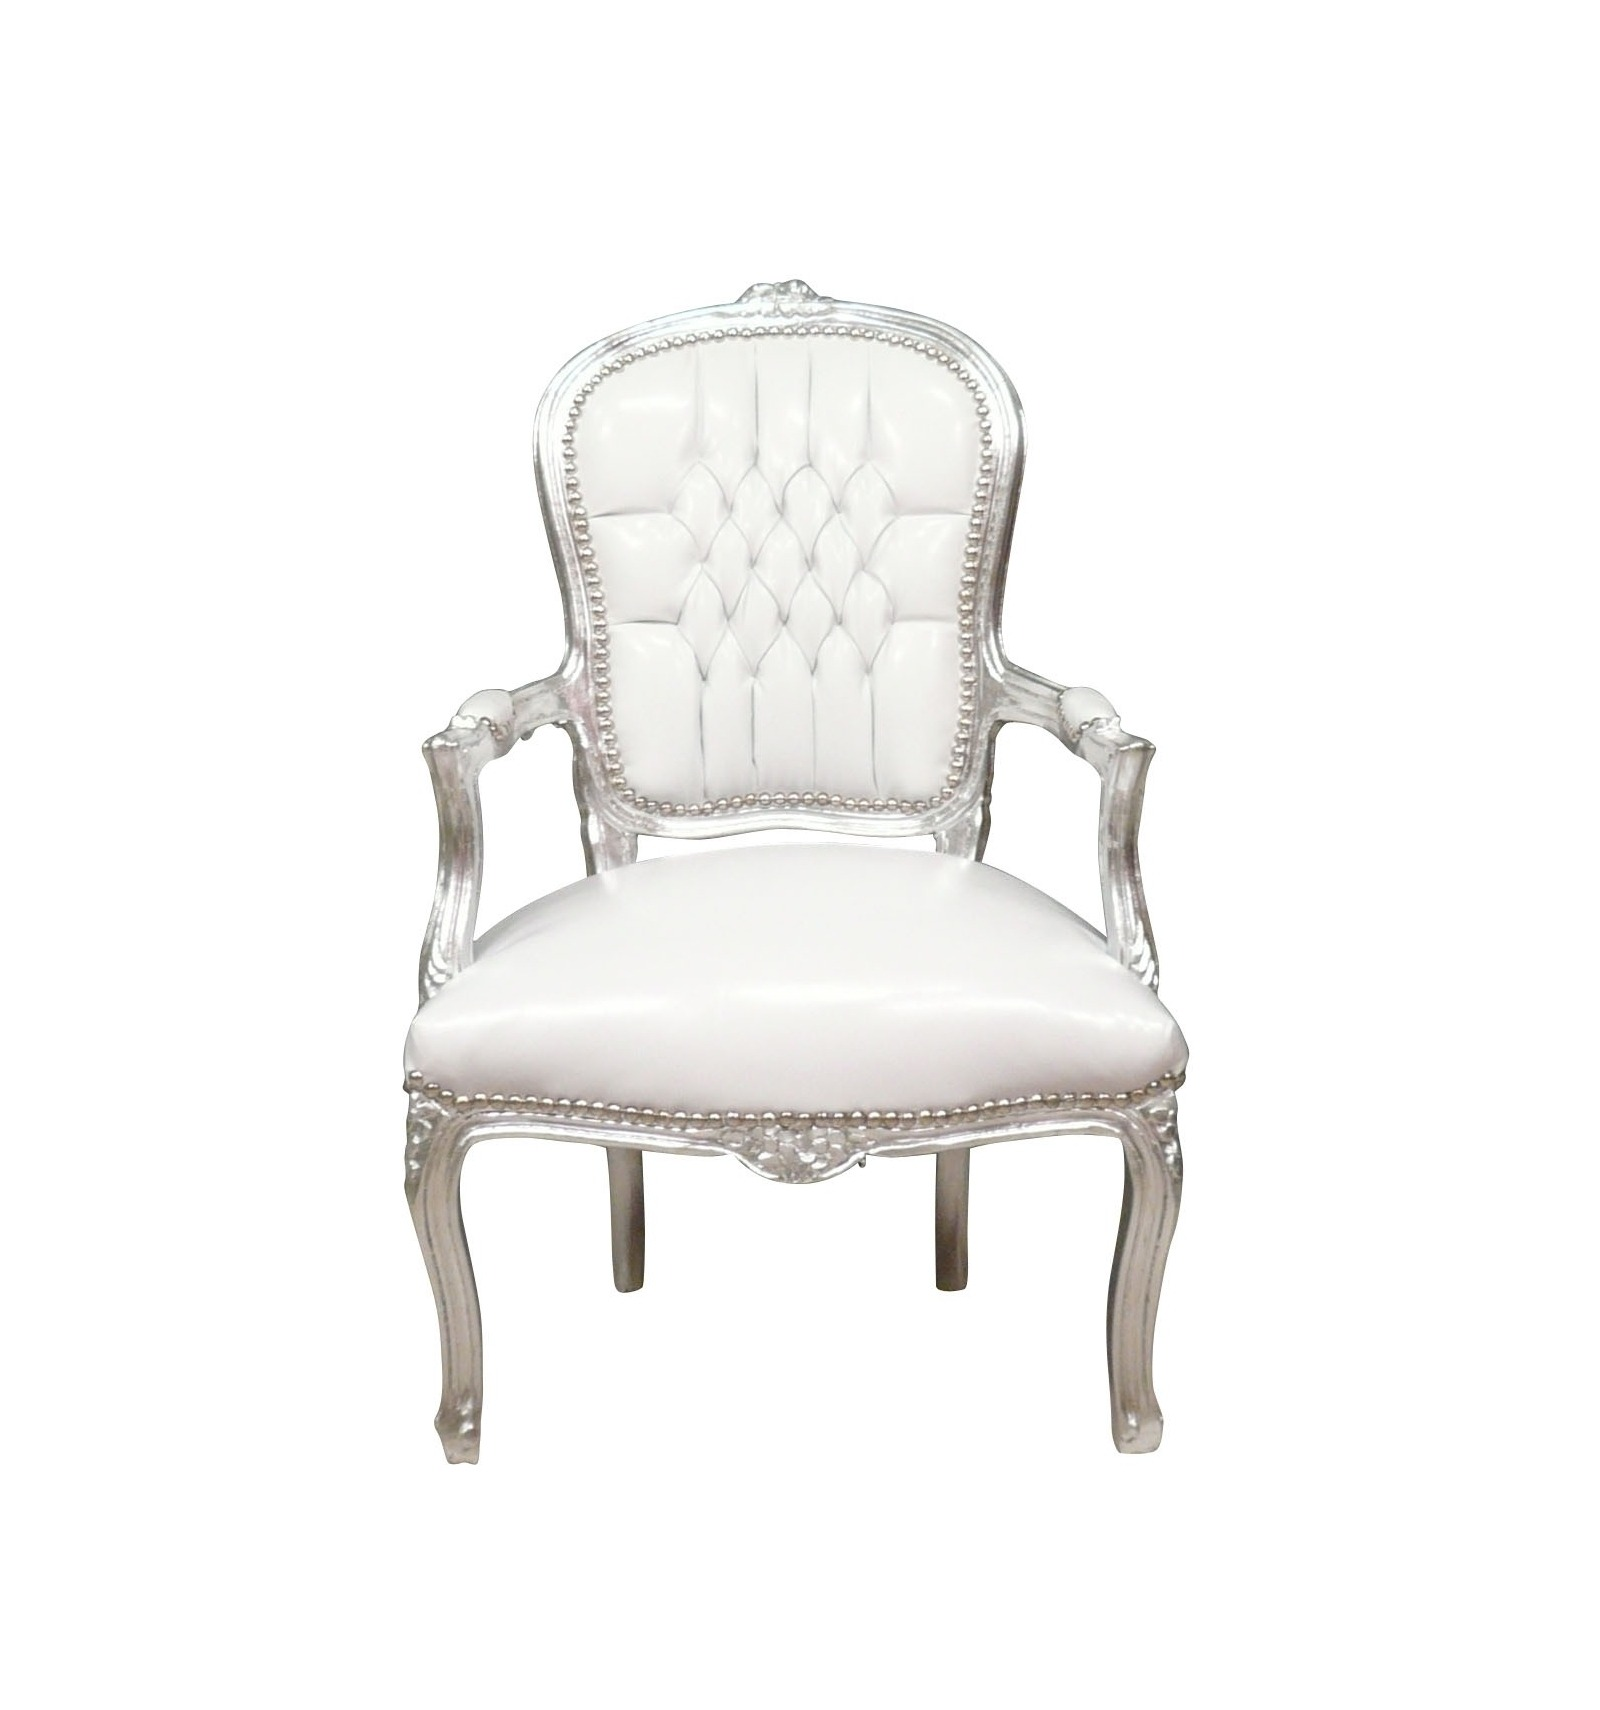 Armchair Baroque Louis Xv White And Silver Louis Xv Armchairs